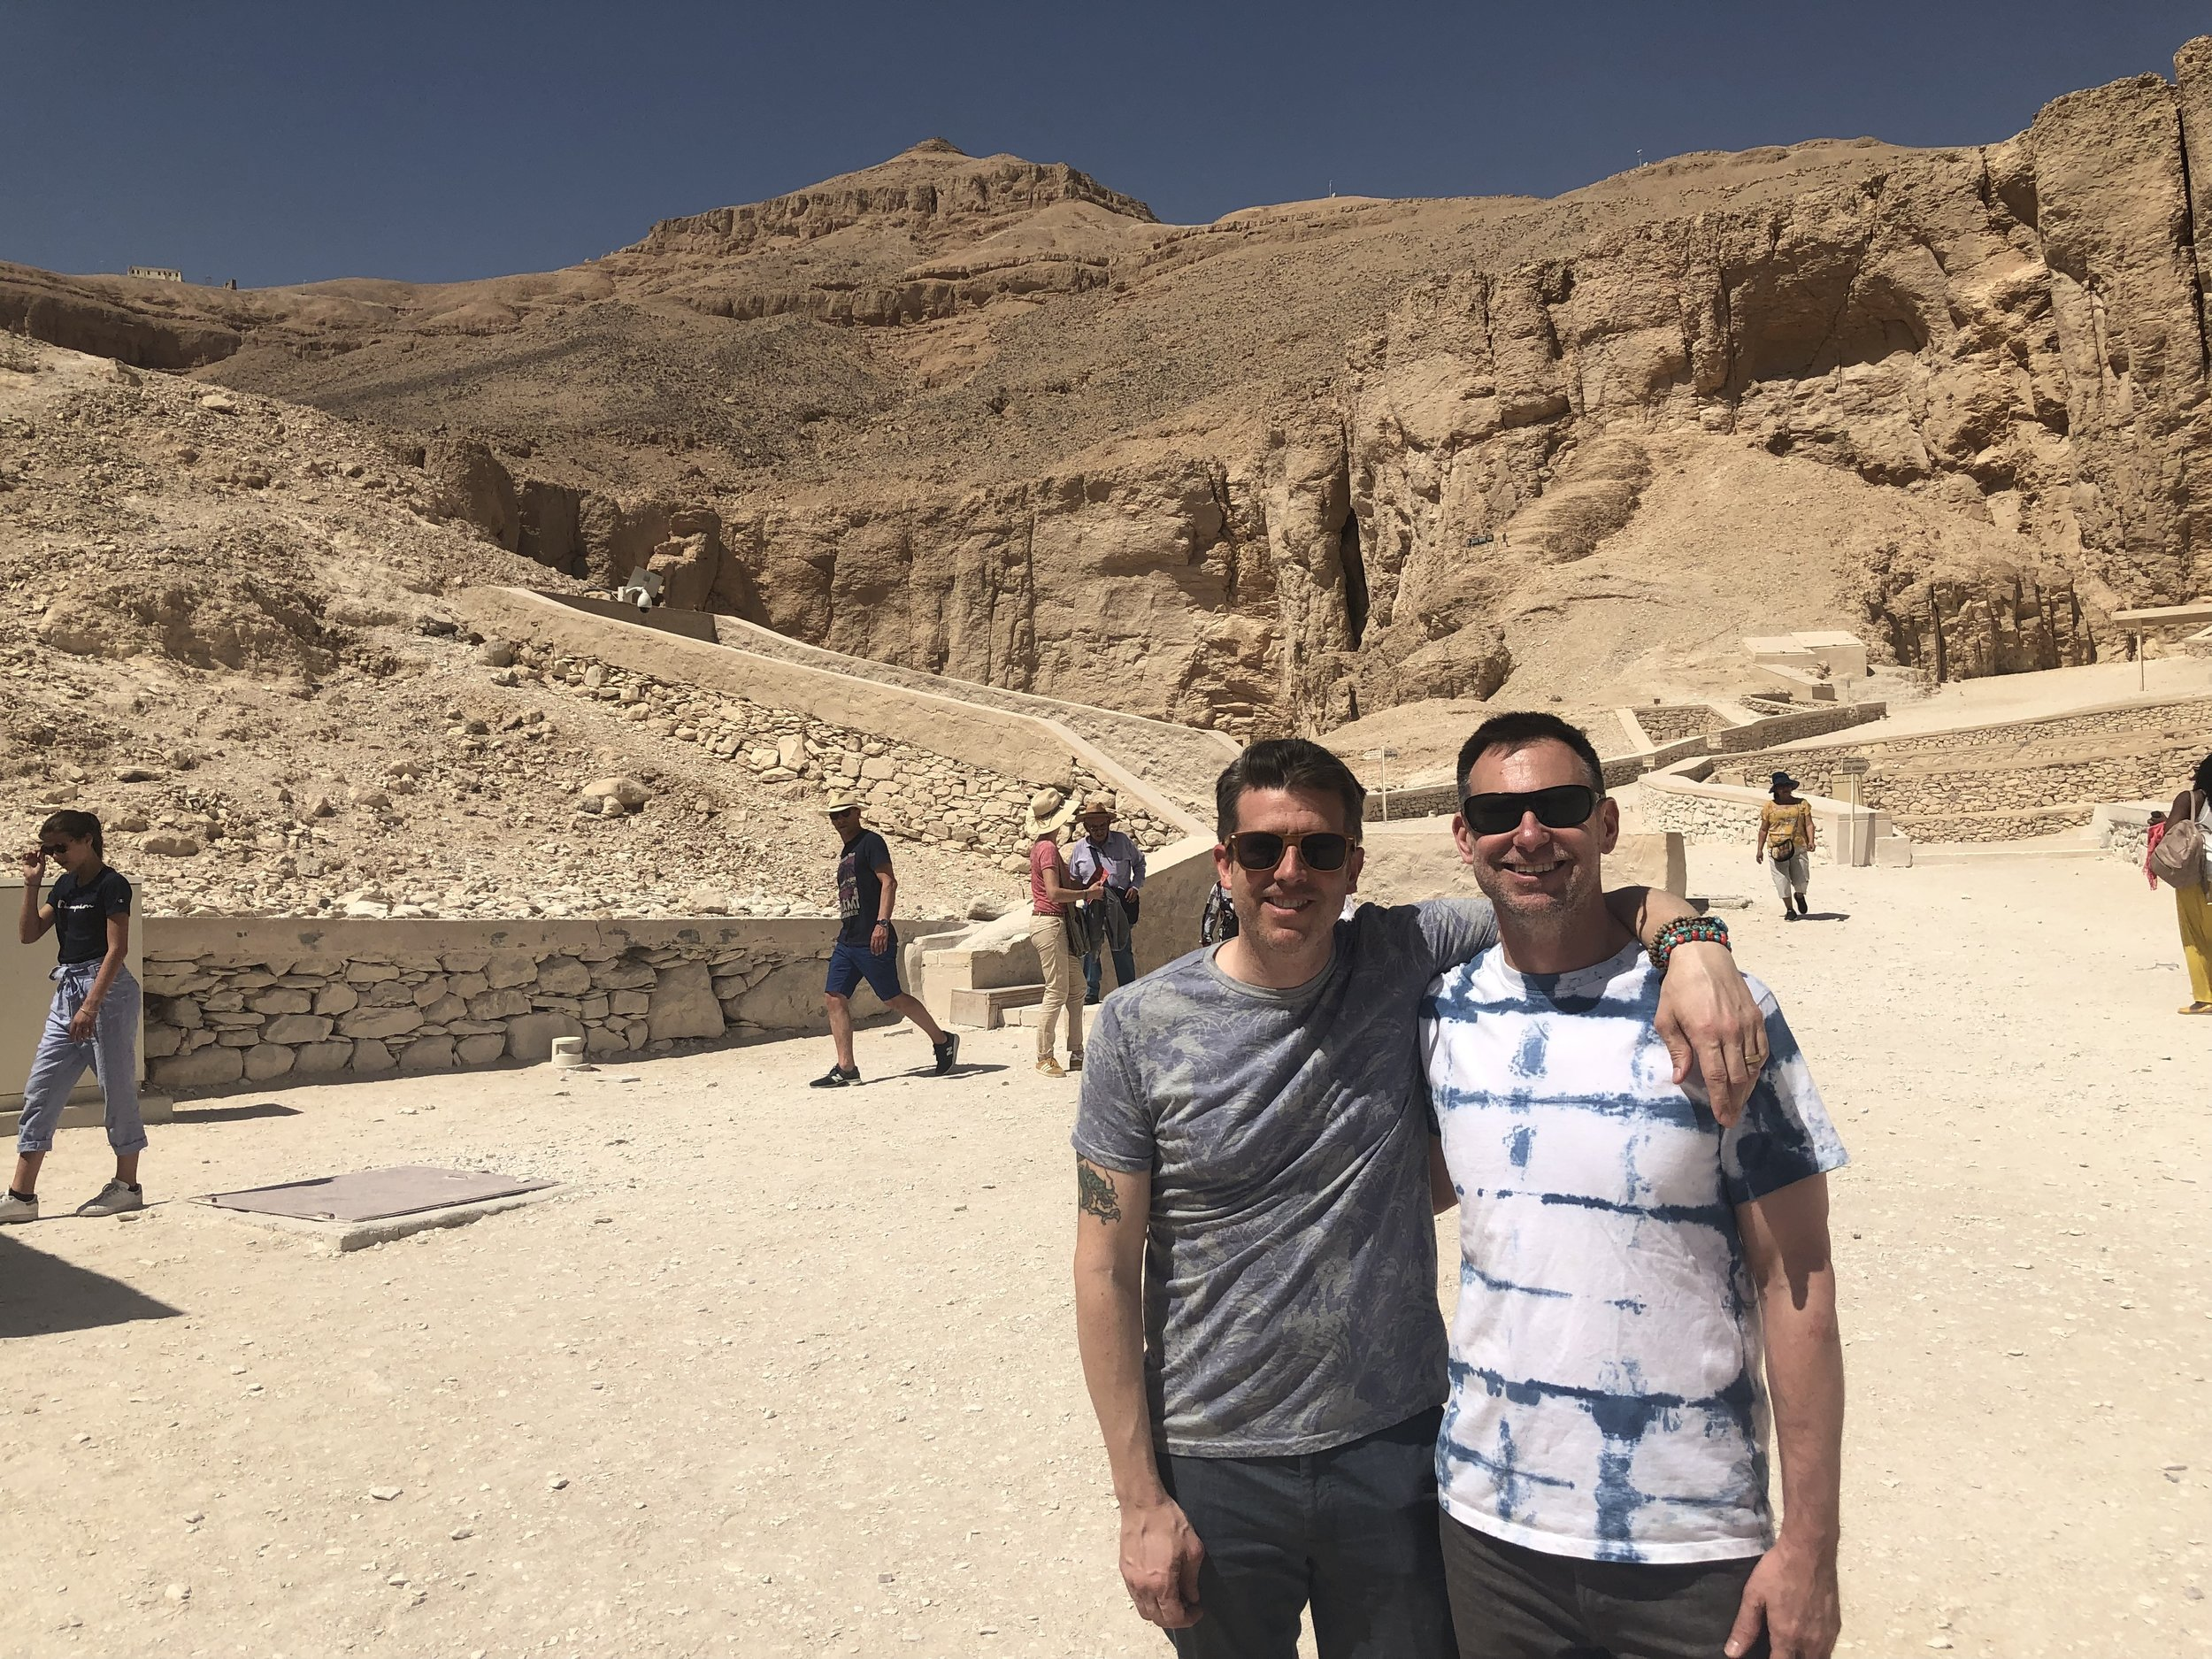 When visiting Luxor, you must plan a morning excursion to the Valley of the Kings